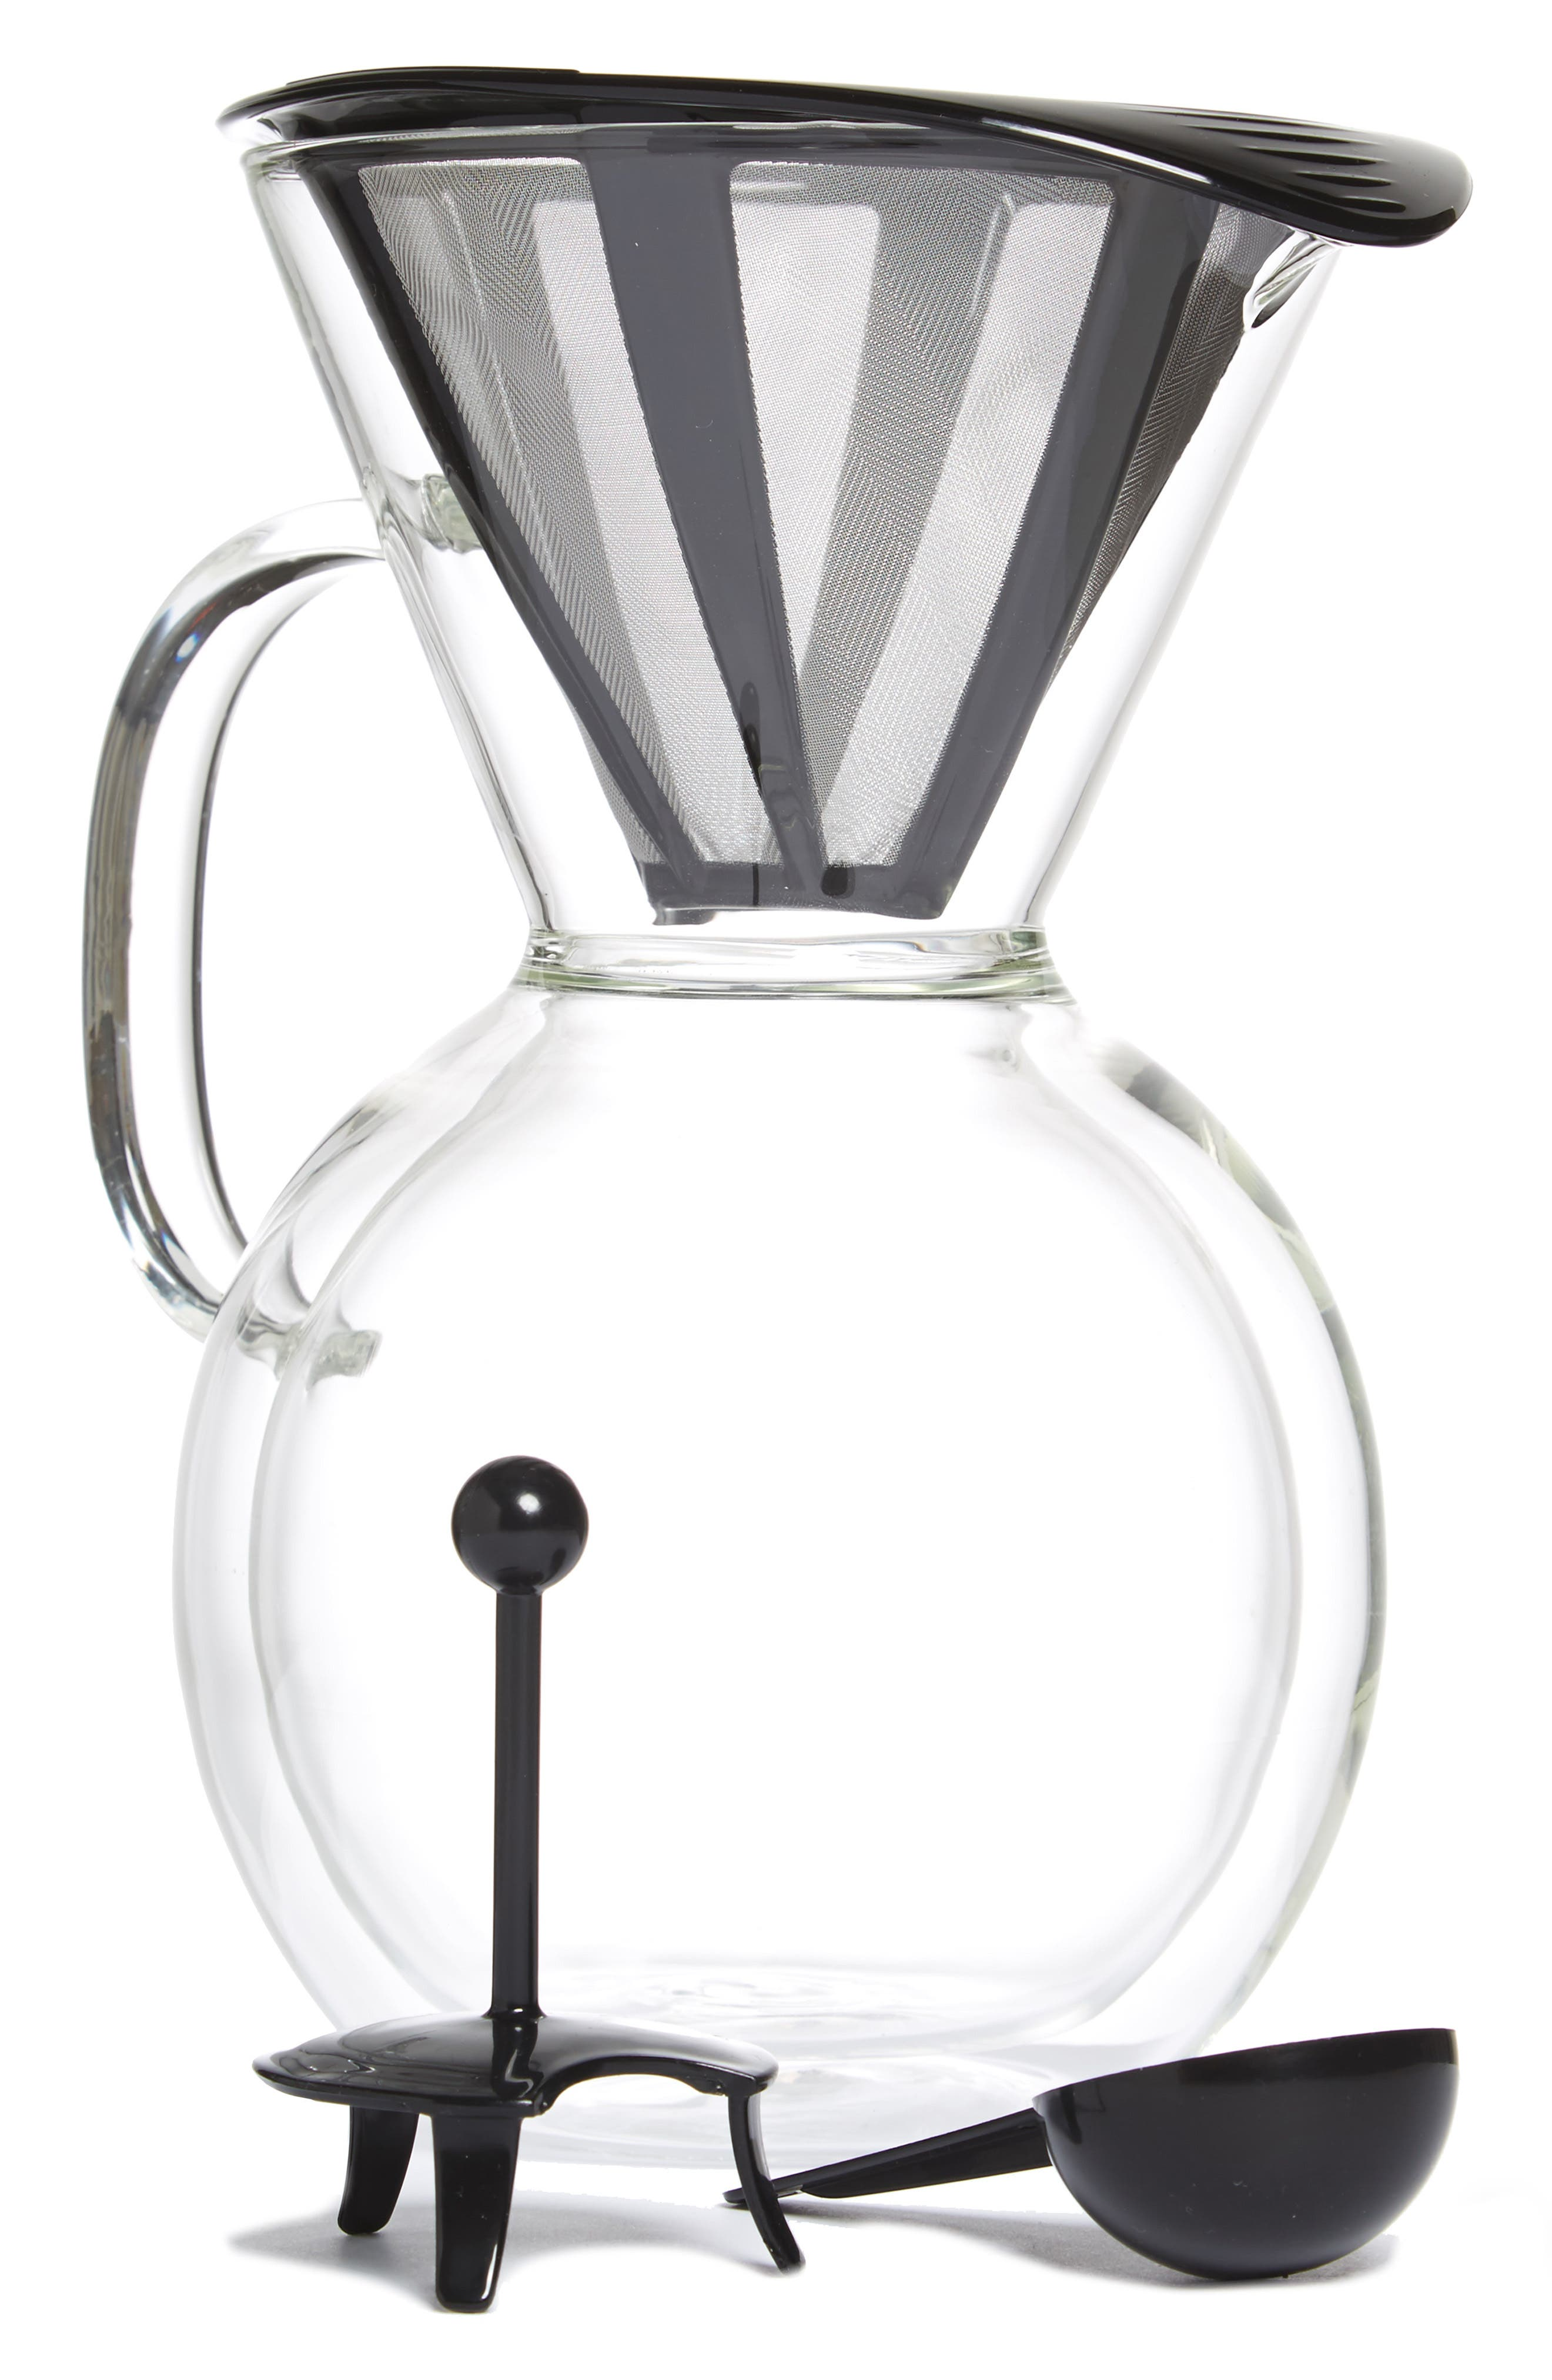 Alternate Image 1 Selected - Bodum Pour Over Coffee Maker with Handle